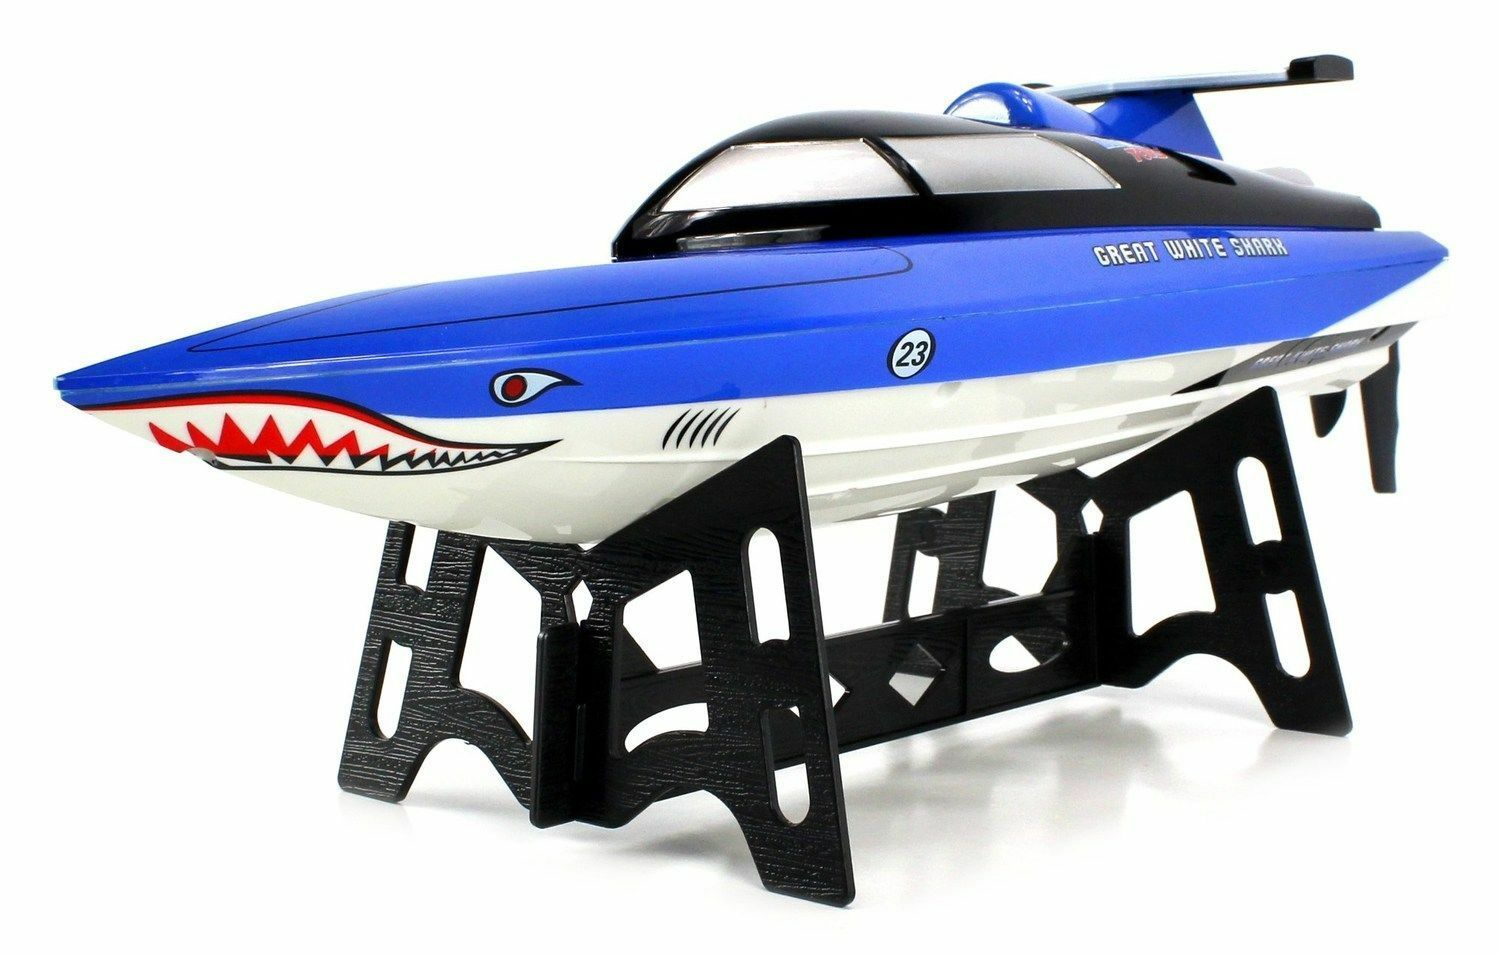 Shark Toys For Boys With Boats : Top rc boats ebay